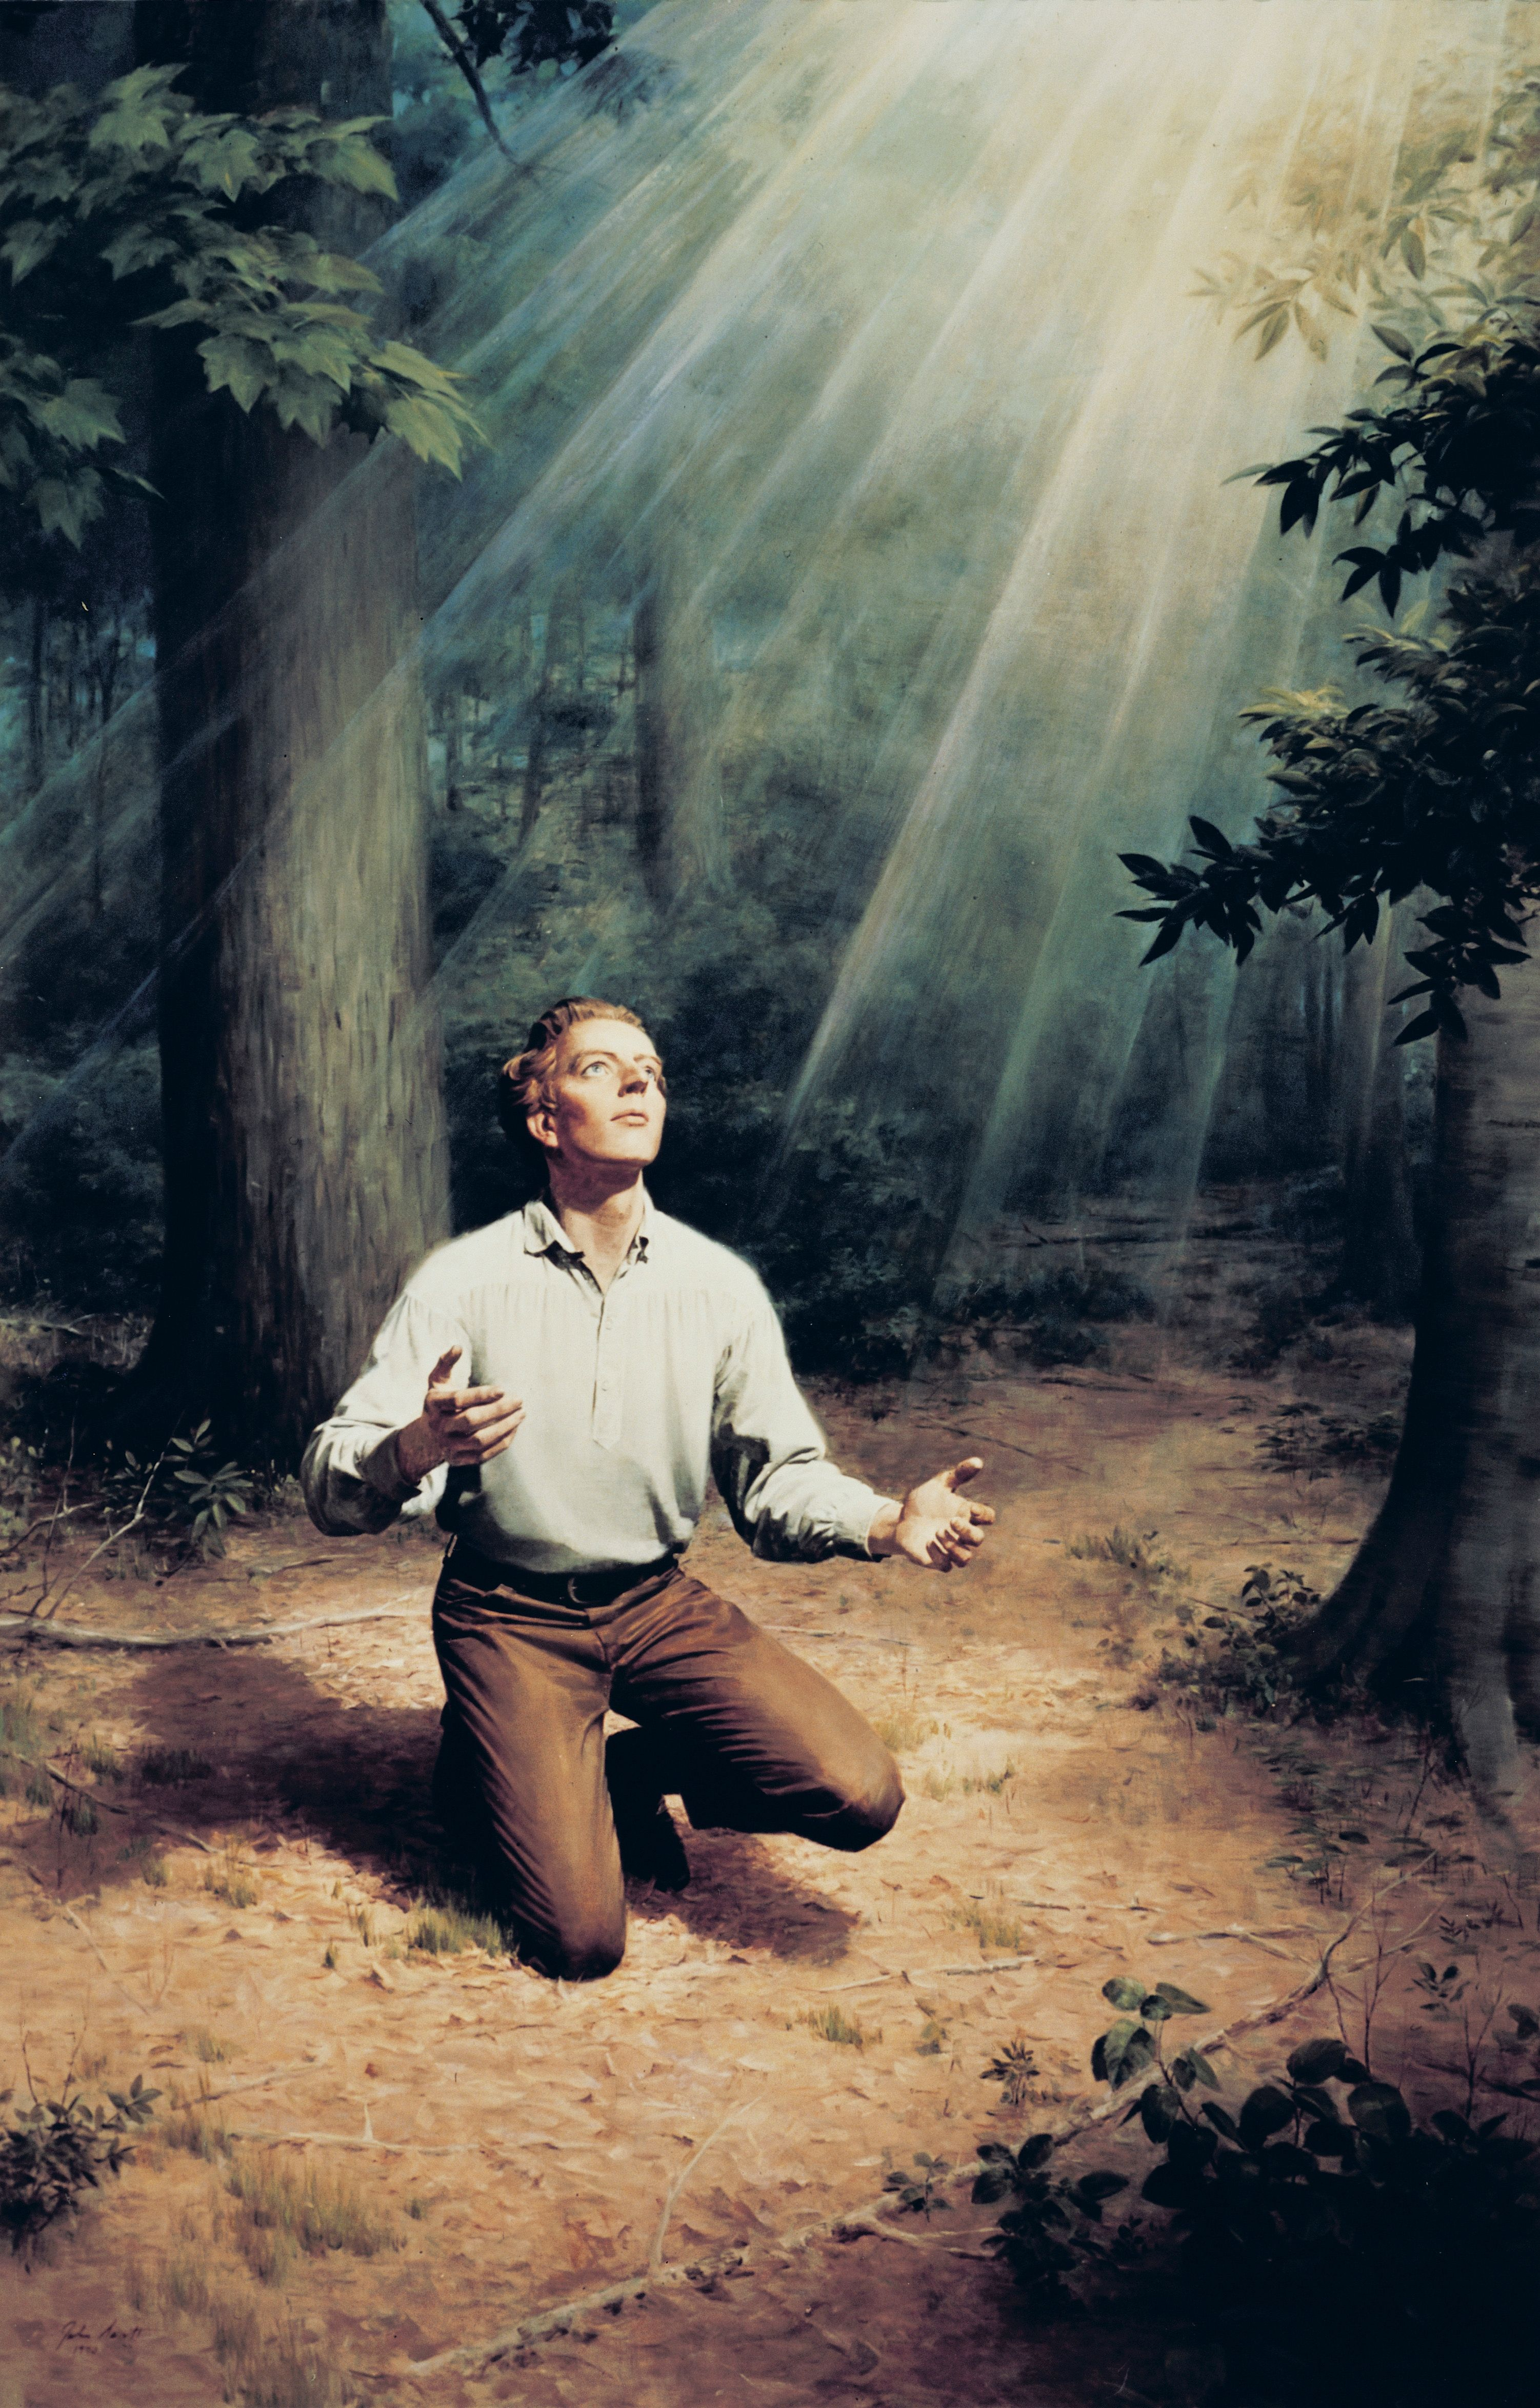 A painting by John Scott showing Joseph Smith praying in the Sacred Grove.